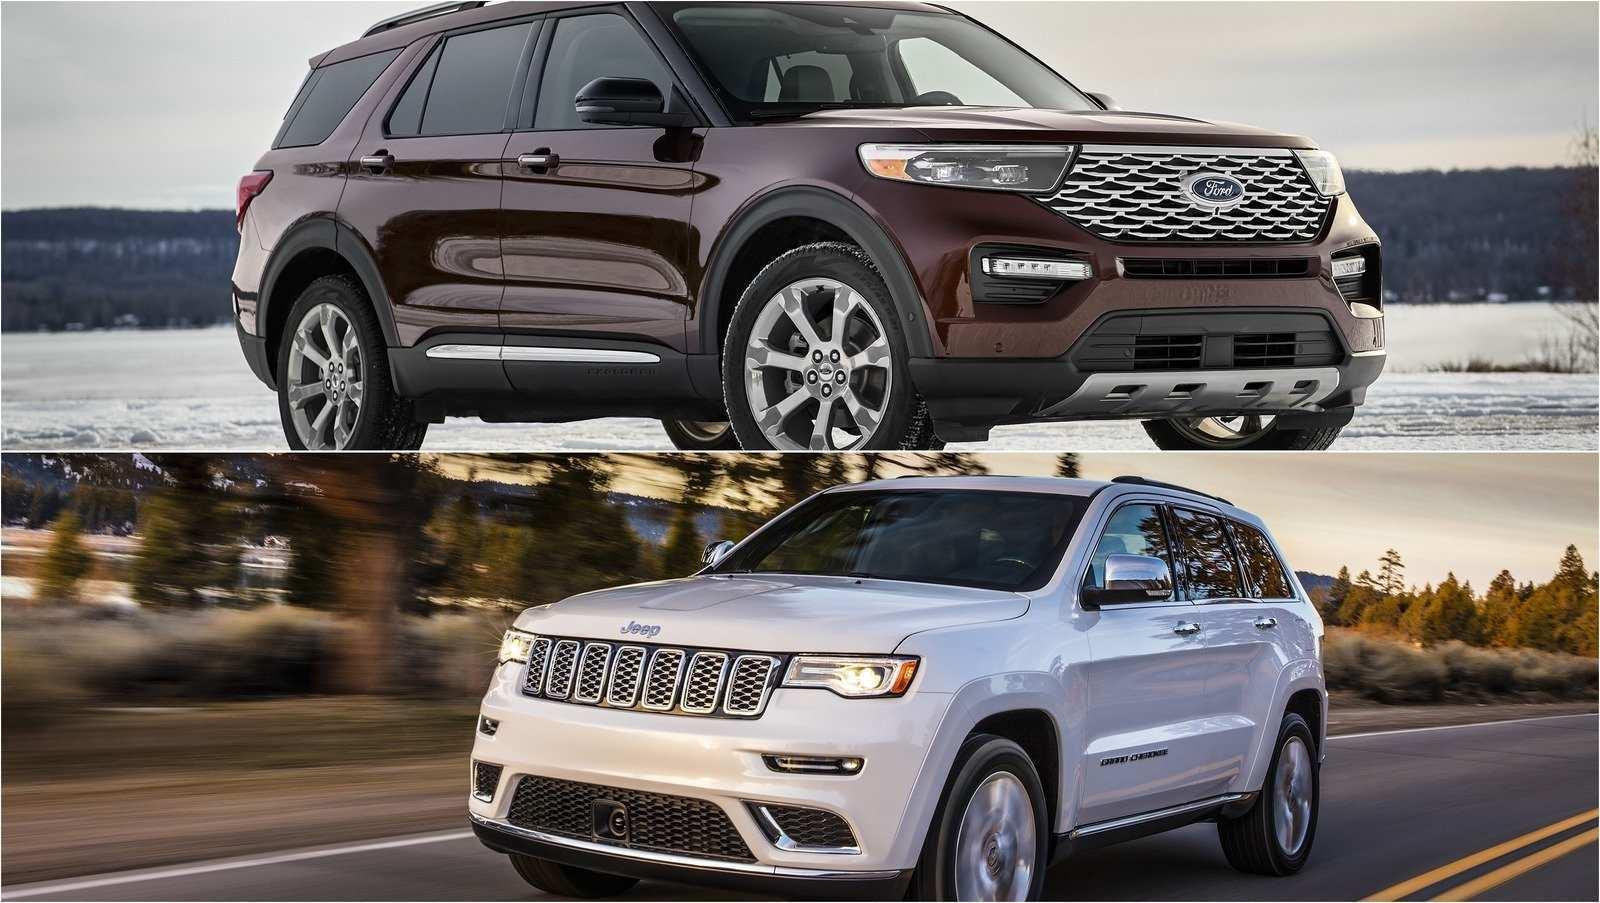 70 The 2020 Jeep Compass Prices